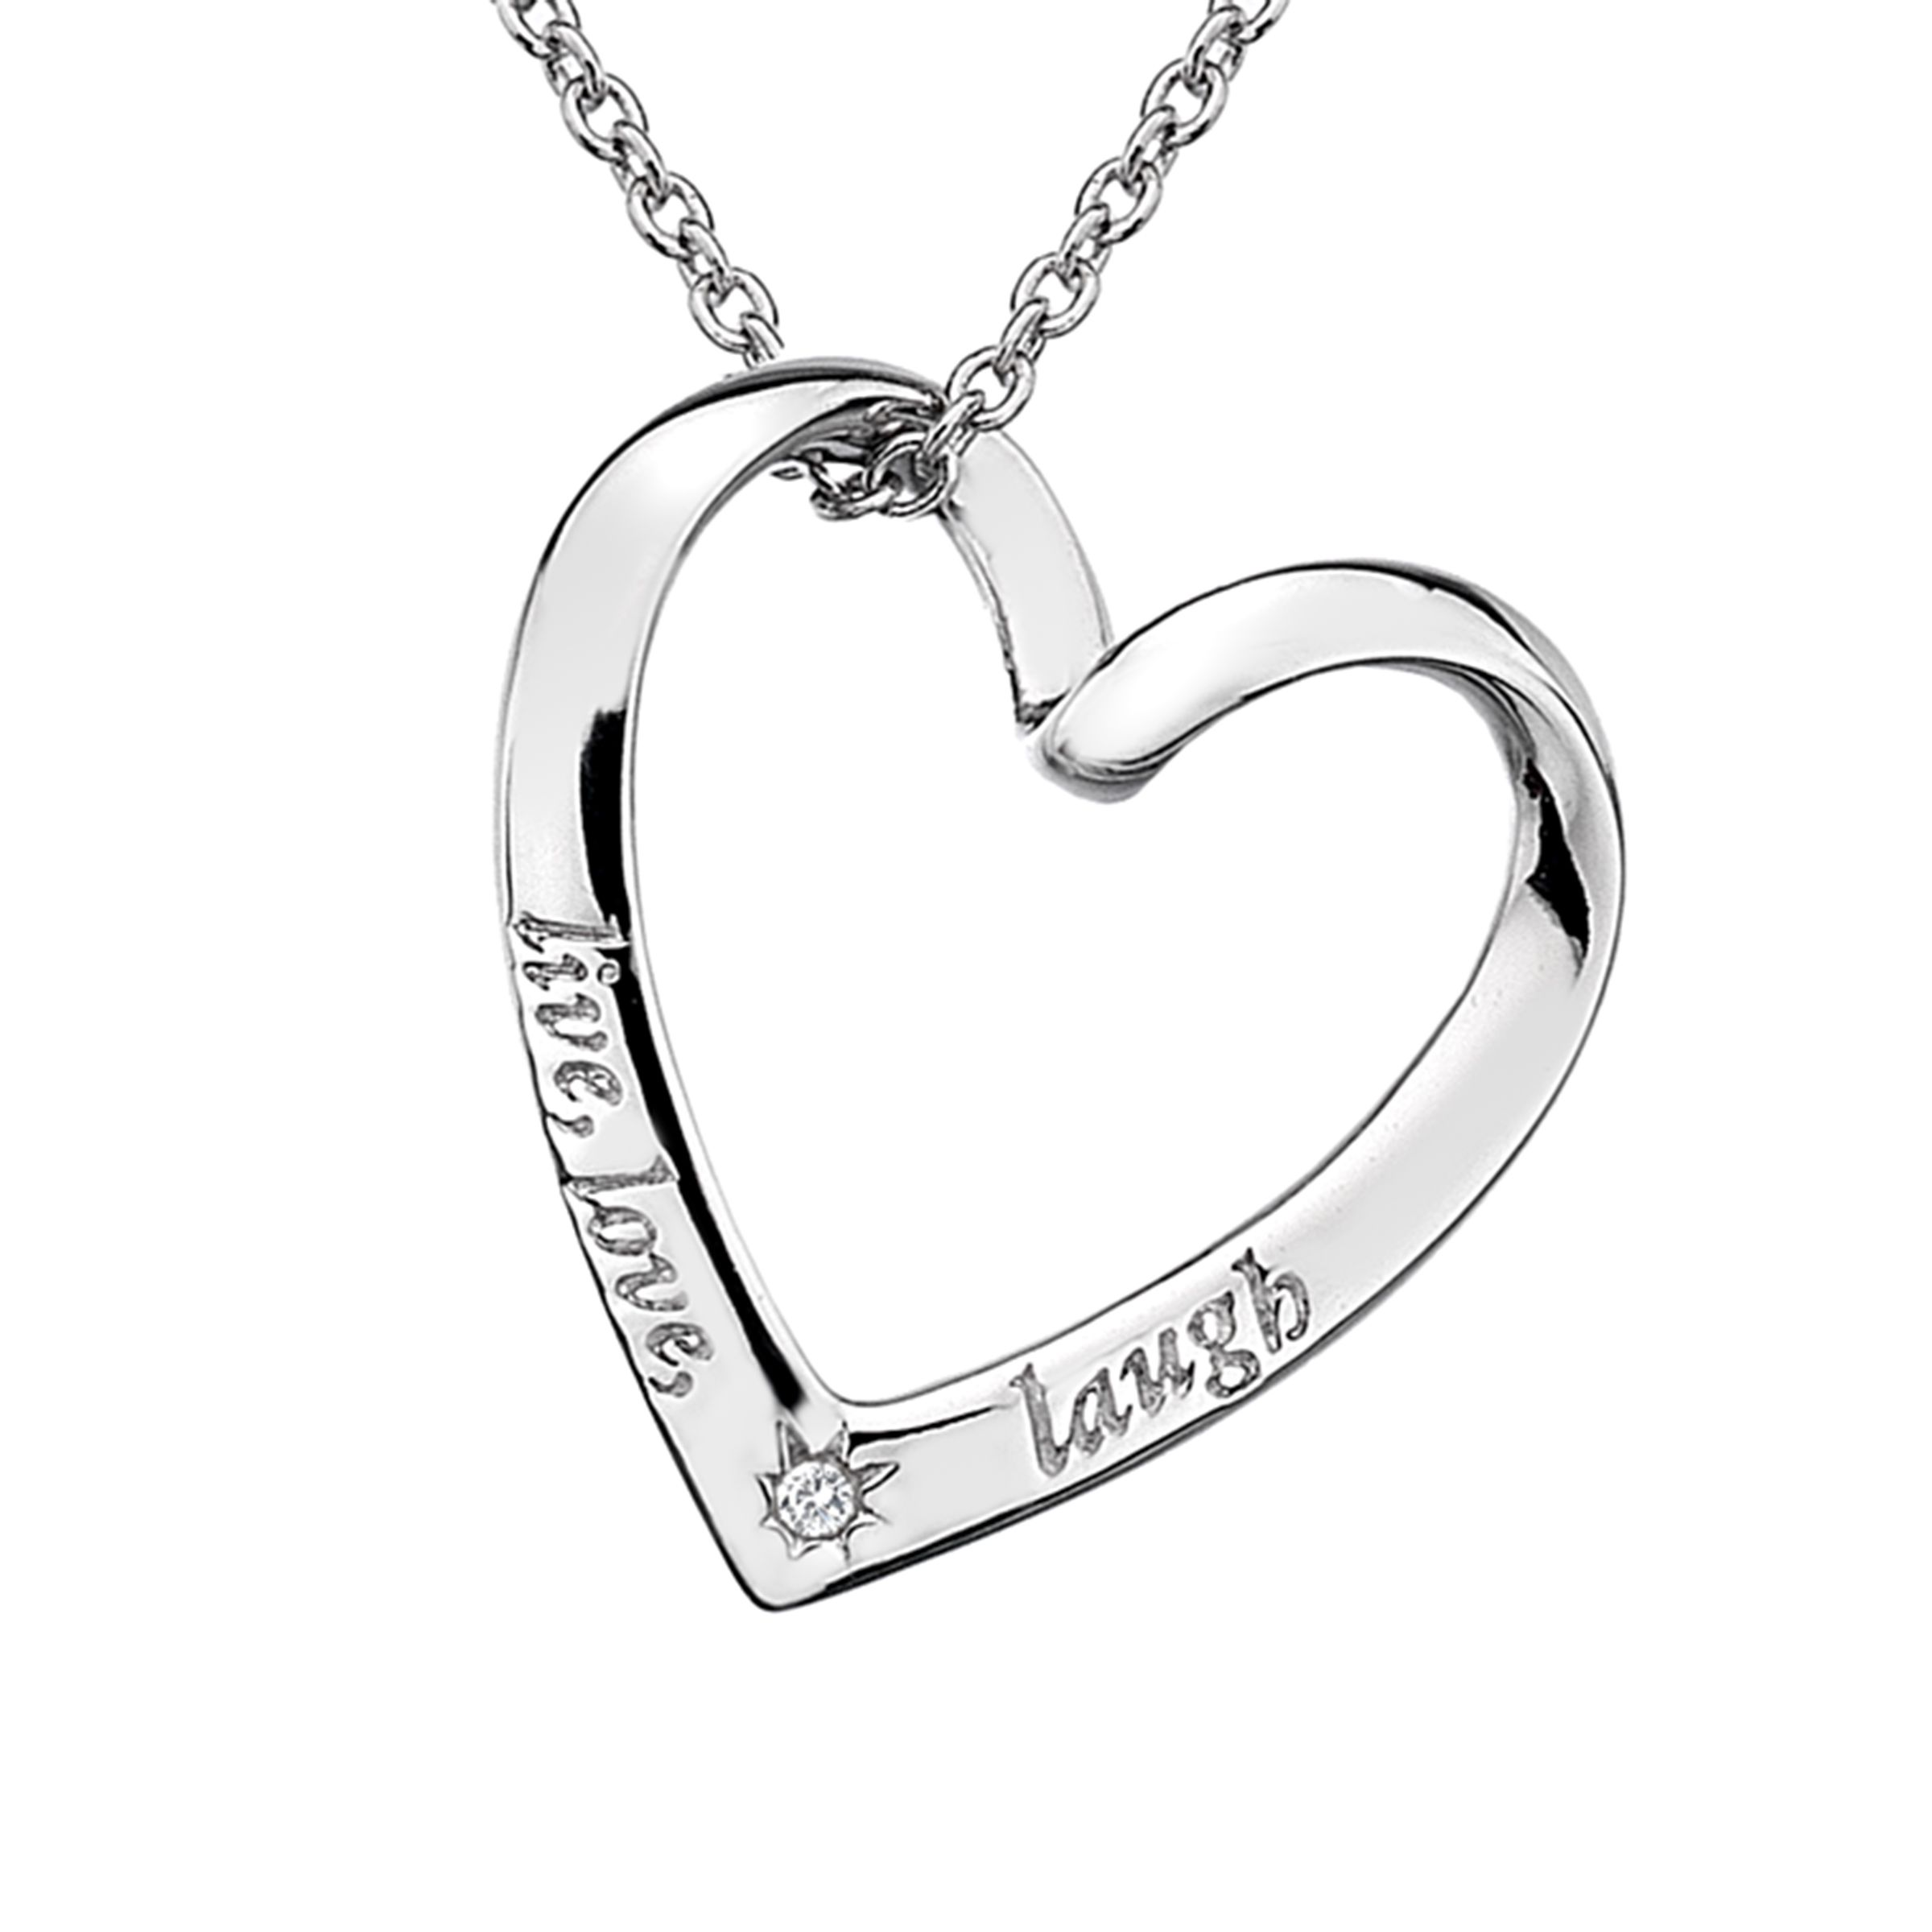 Lily & Lotty Scripted Love Treasure Adore Sterling Silver Necklace - 20 b2BkH4B4vH